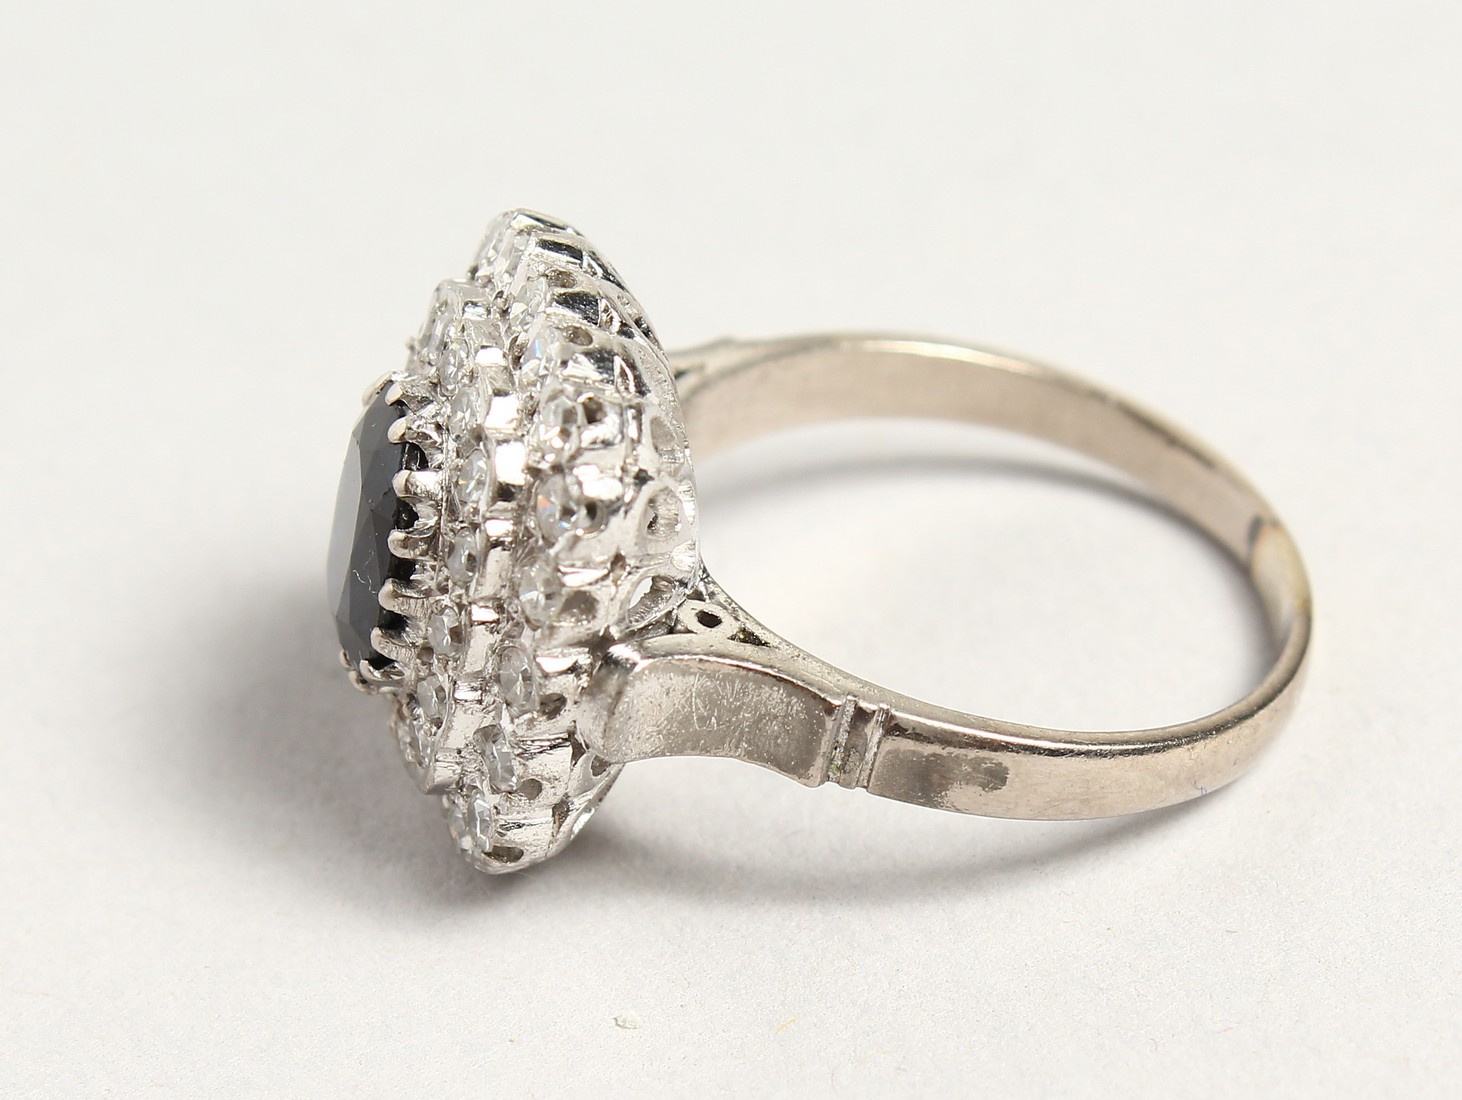 A SUPERB 18CT WHITE GOLD SAPPHIRE AND DIAMOND CLUSTER RING. - Image 5 of 6